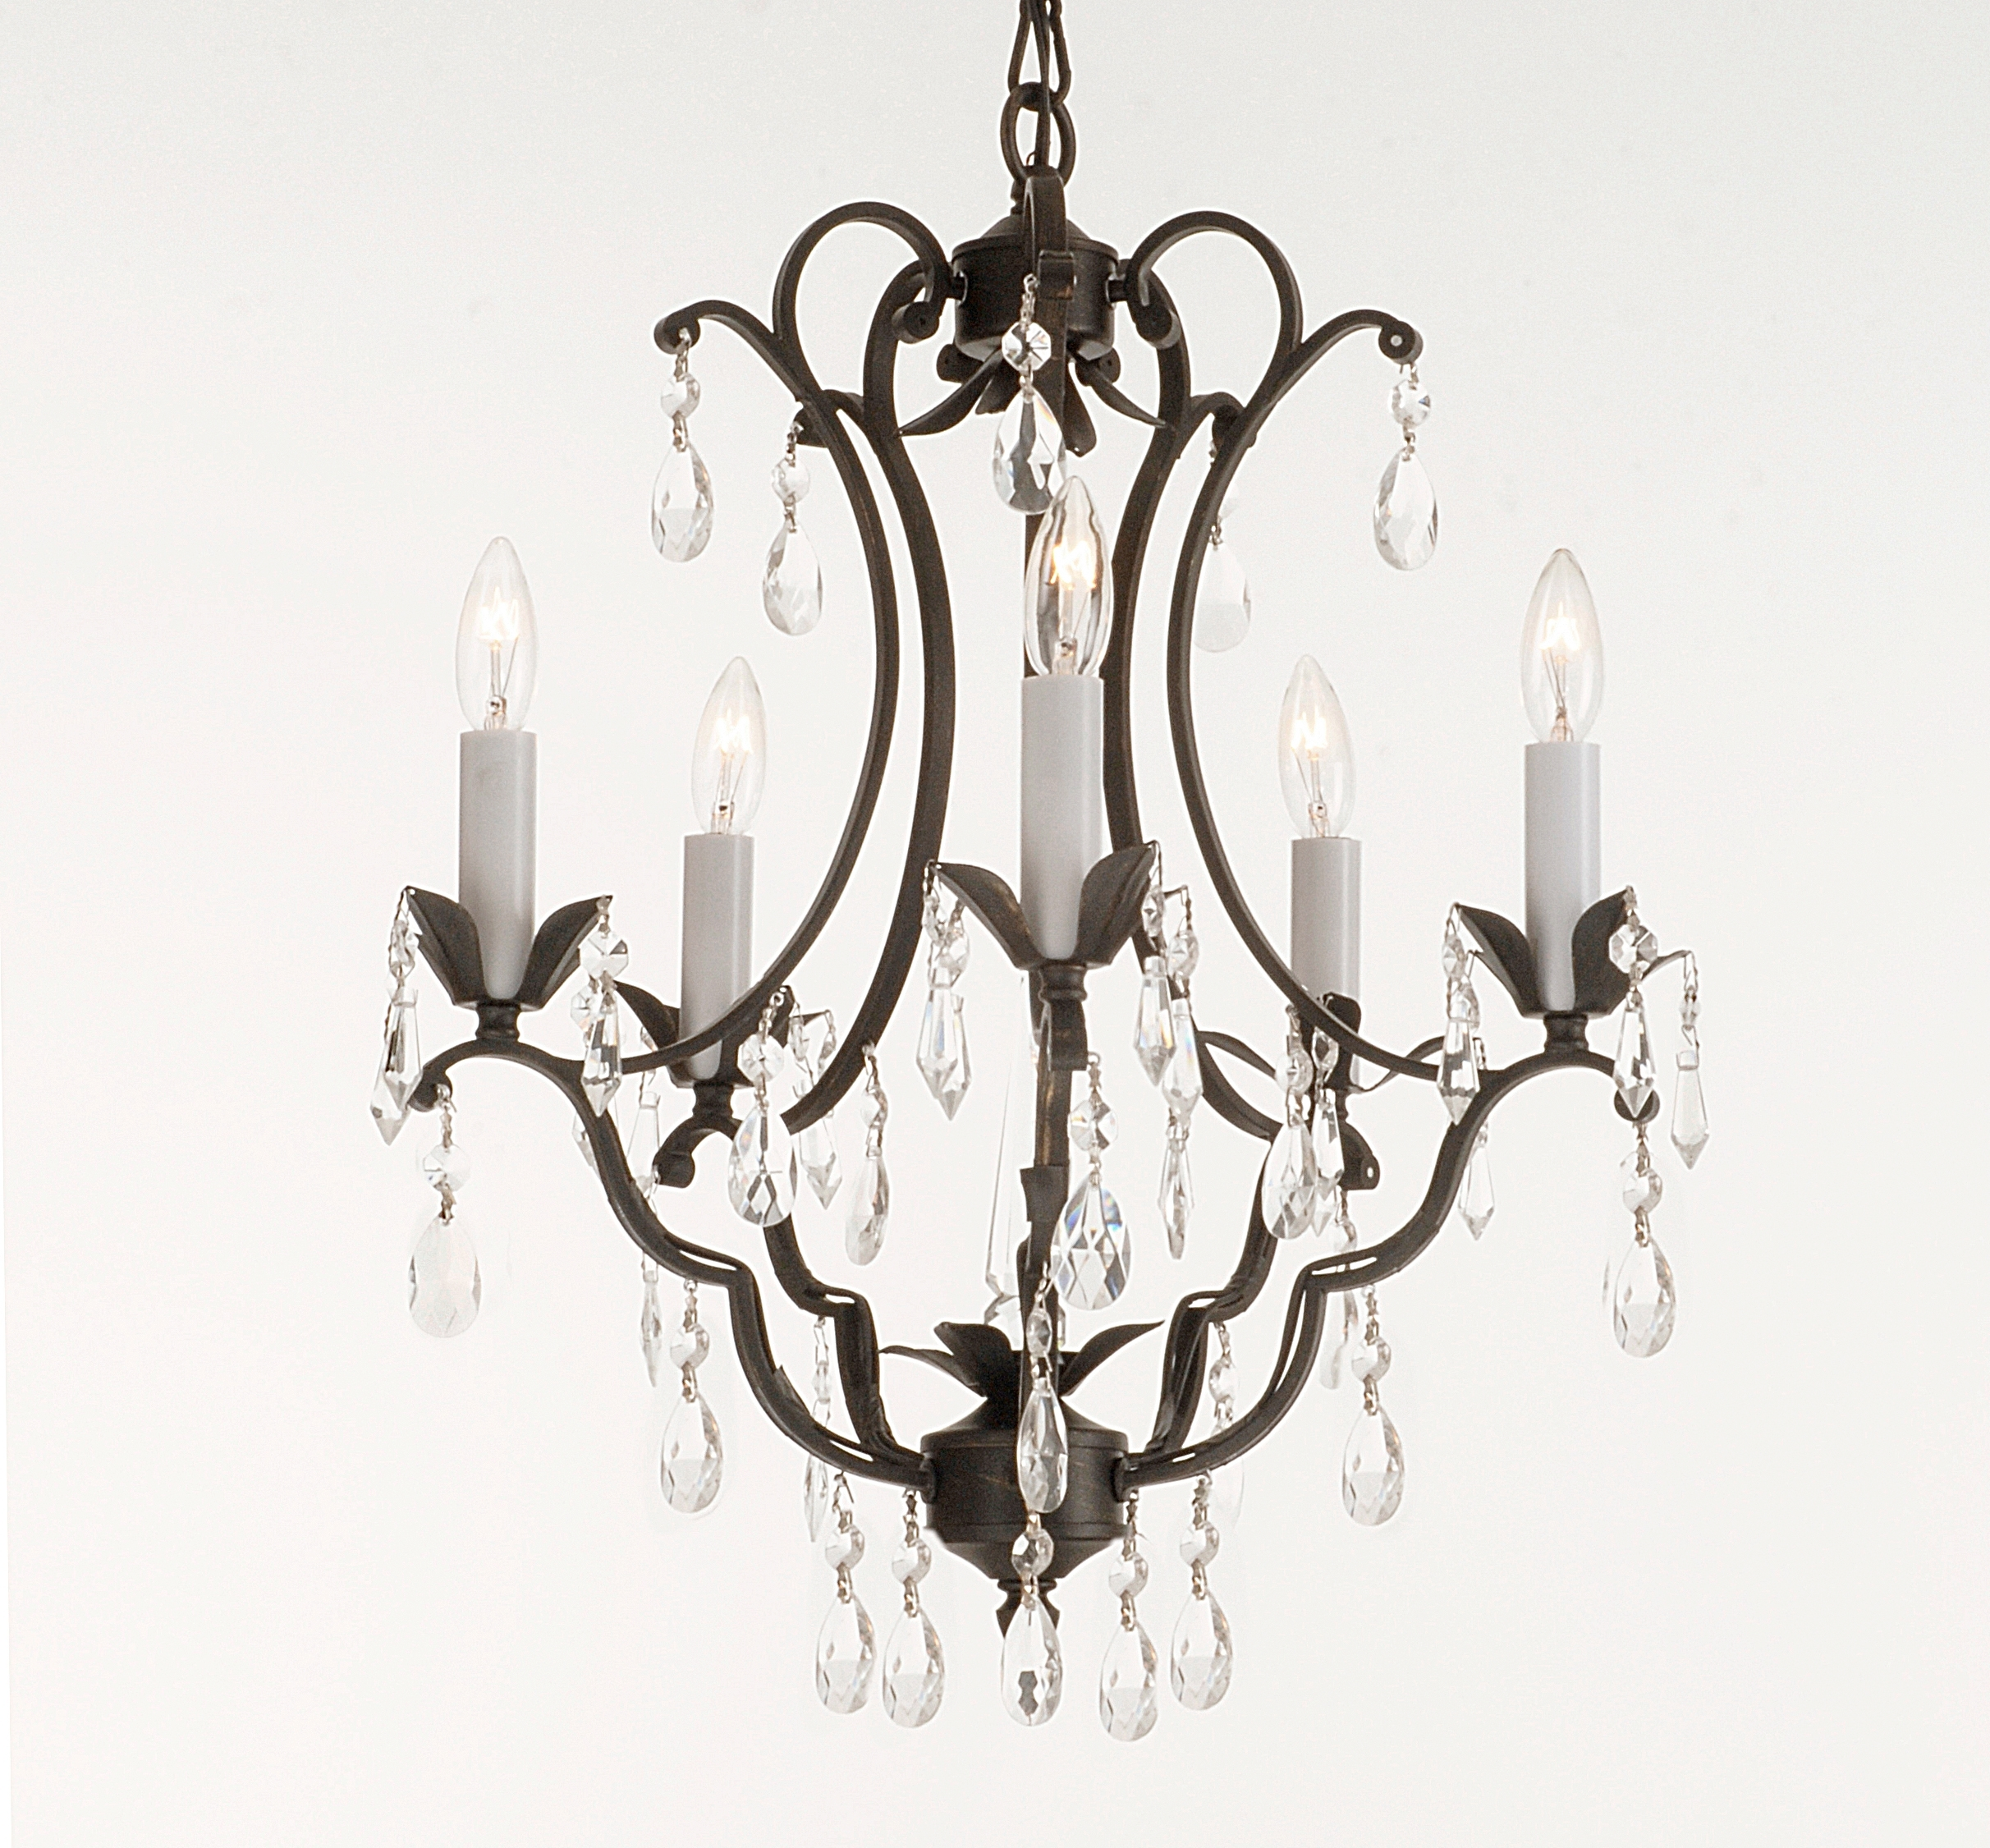 Modern Wrought Iron Chandeliers With Regard To Most Current Light : Furniture Vintage Look Modern Black Wrought Iron Chandeliers (View 5 of 15)